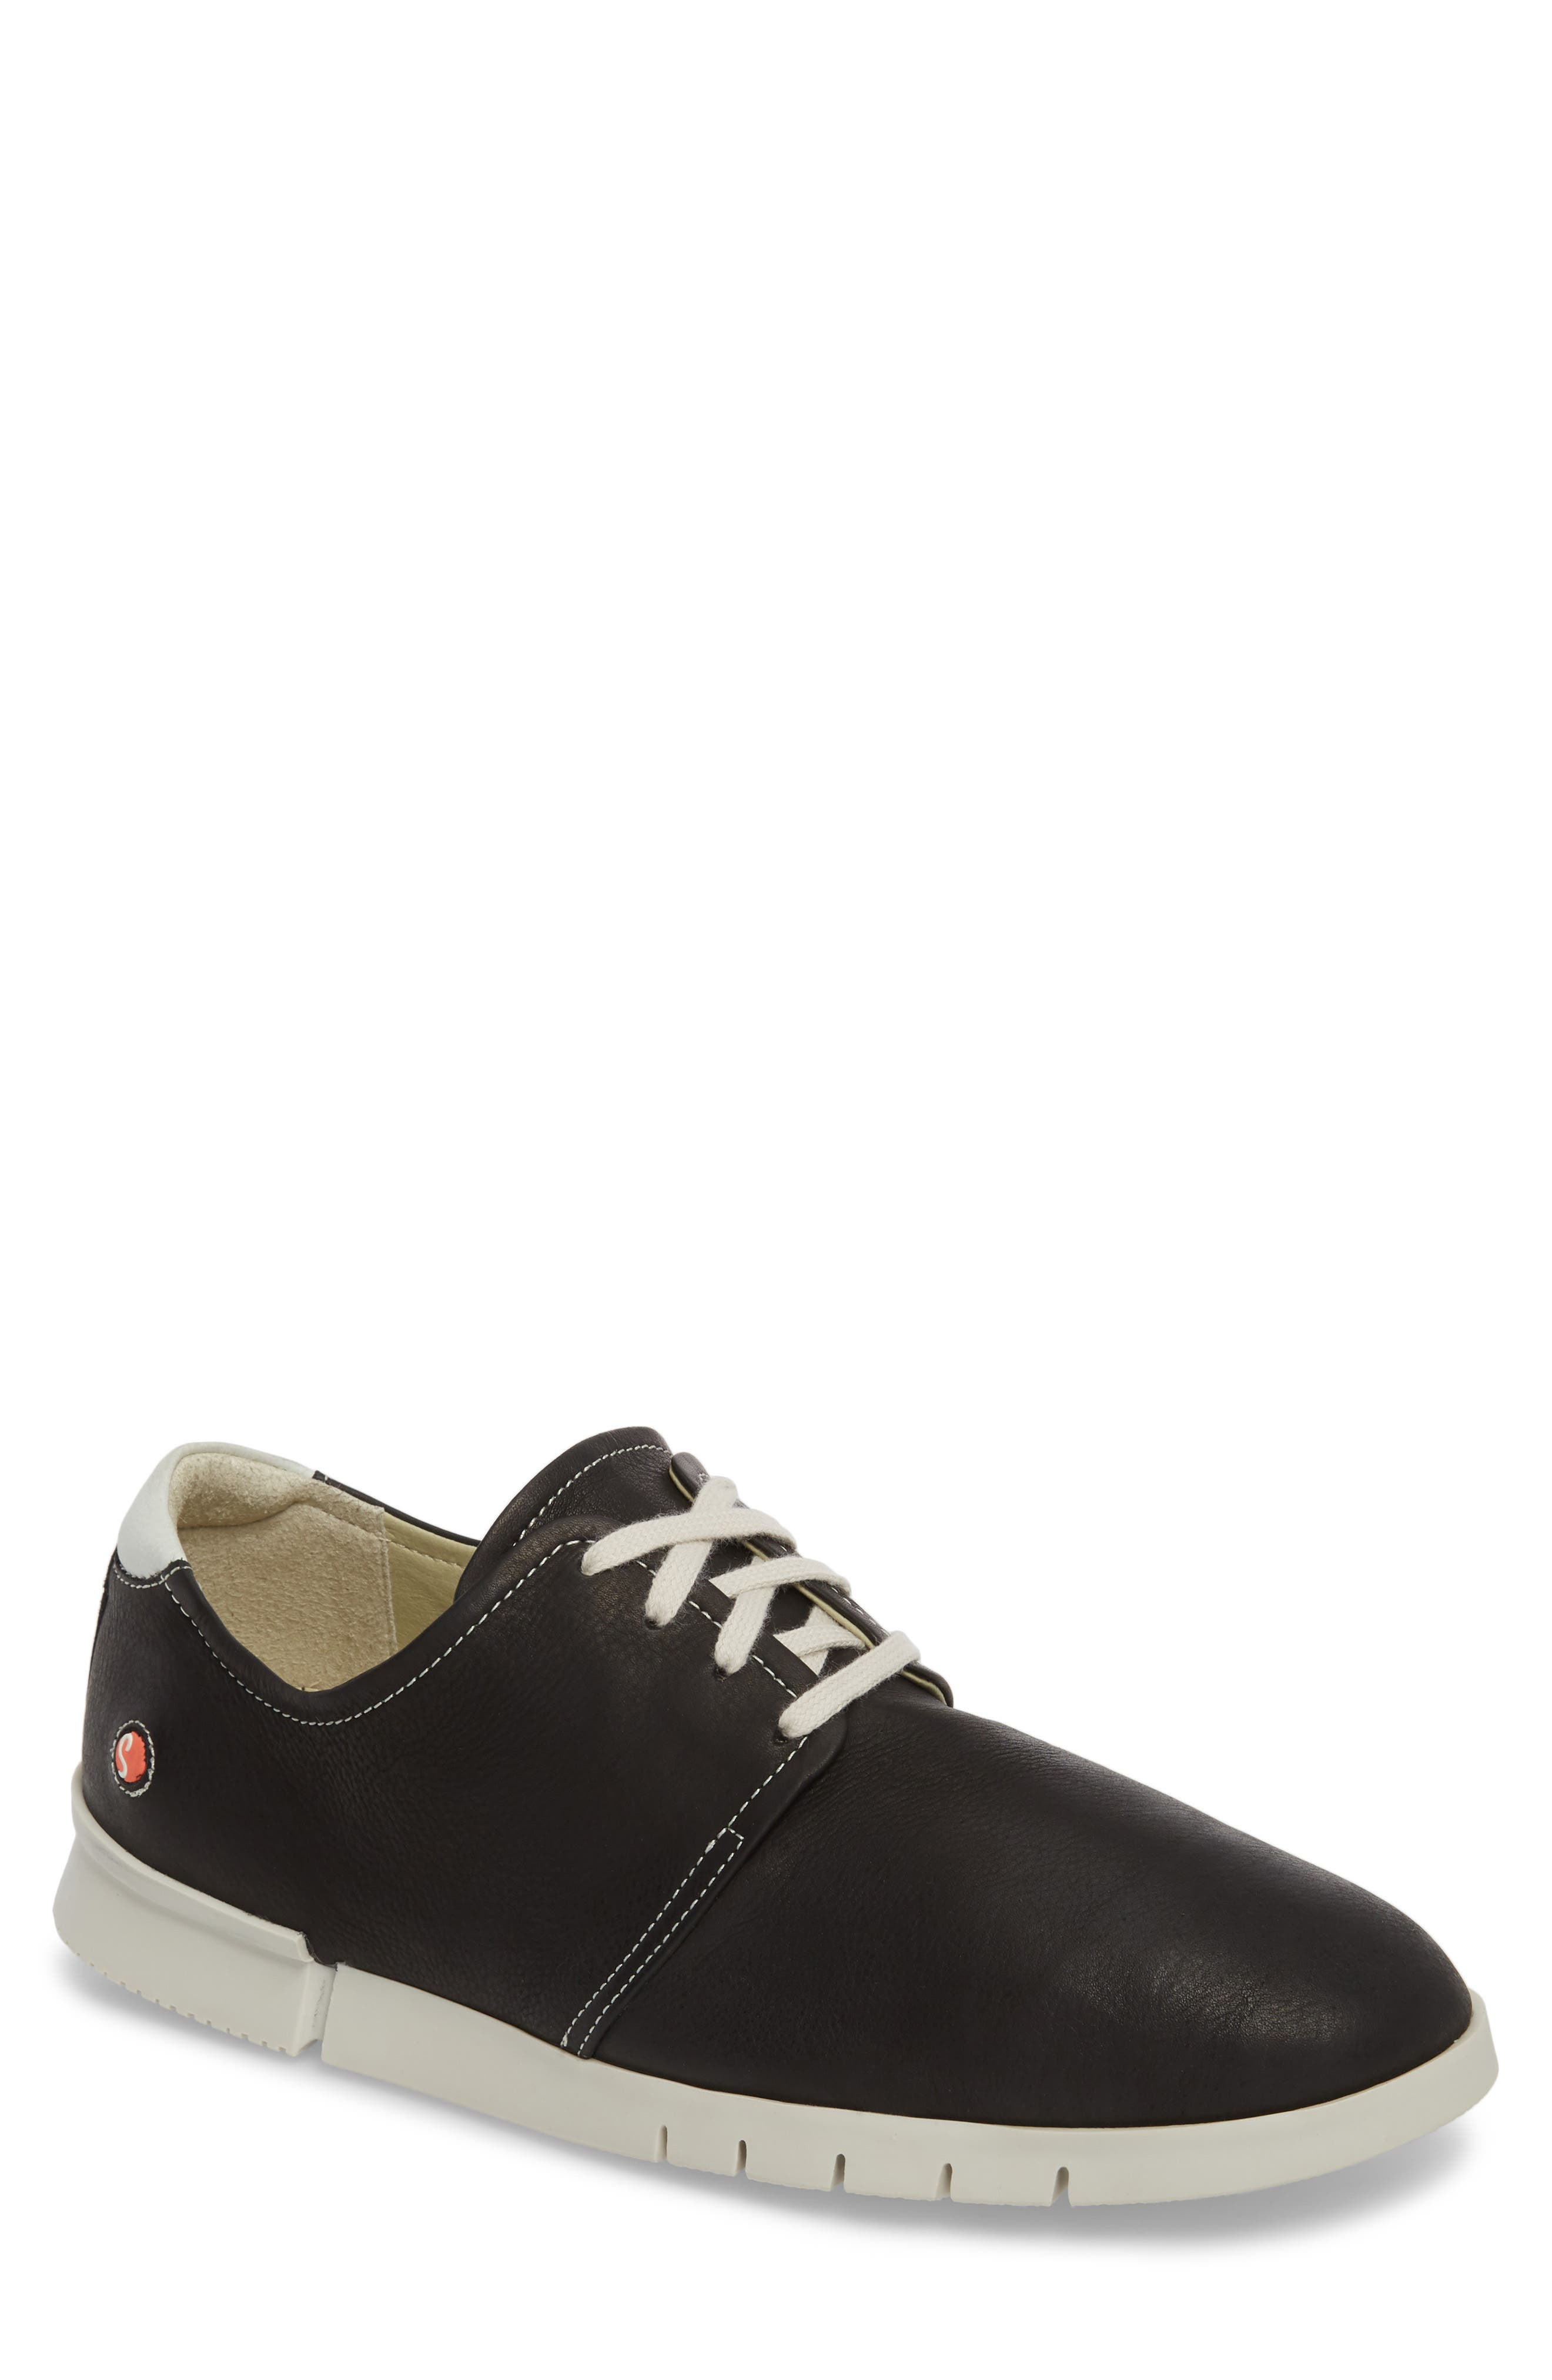 Main Image - Softinos by Fly London Cap Low Top Sneaker (Men)